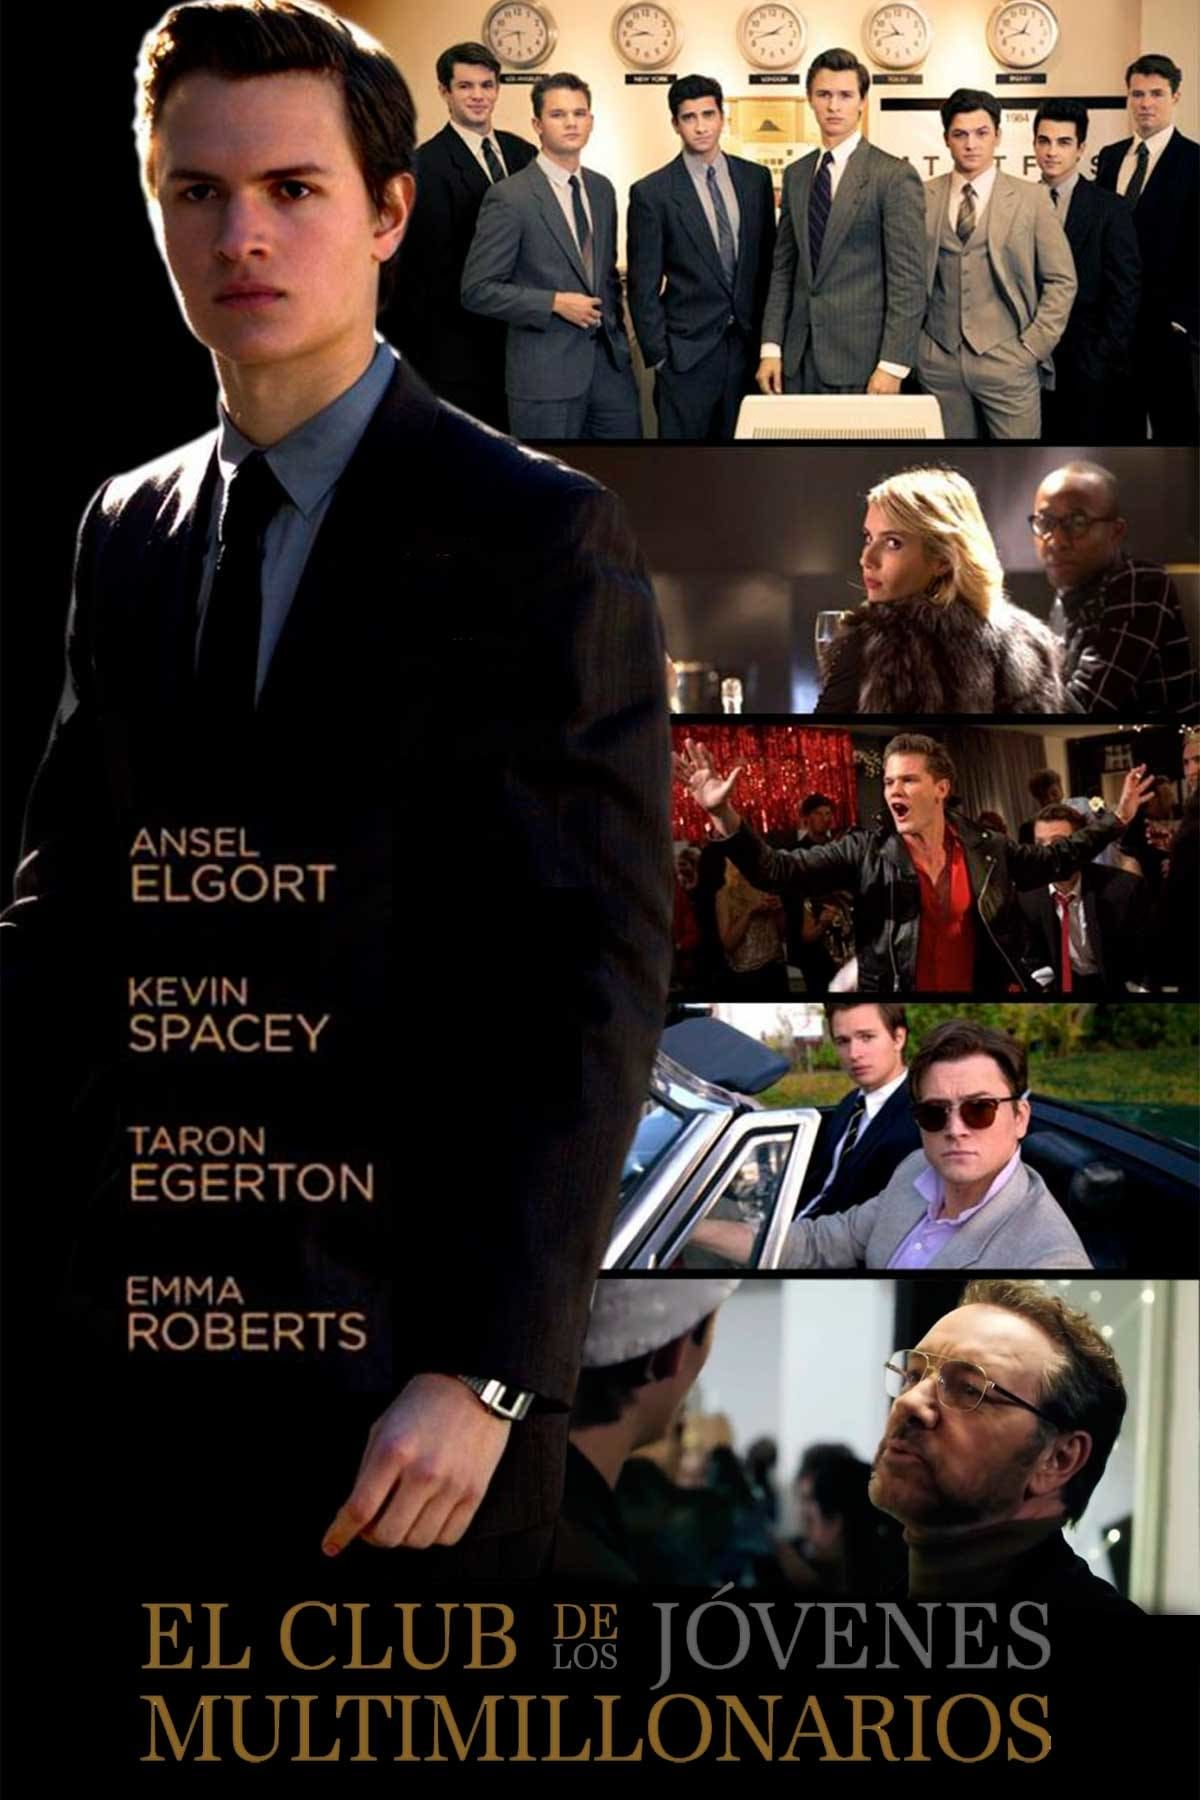 c591dced6 Billionaire Boys Club FULL MOVIE Streaming Online in HD-720p Video Quality .